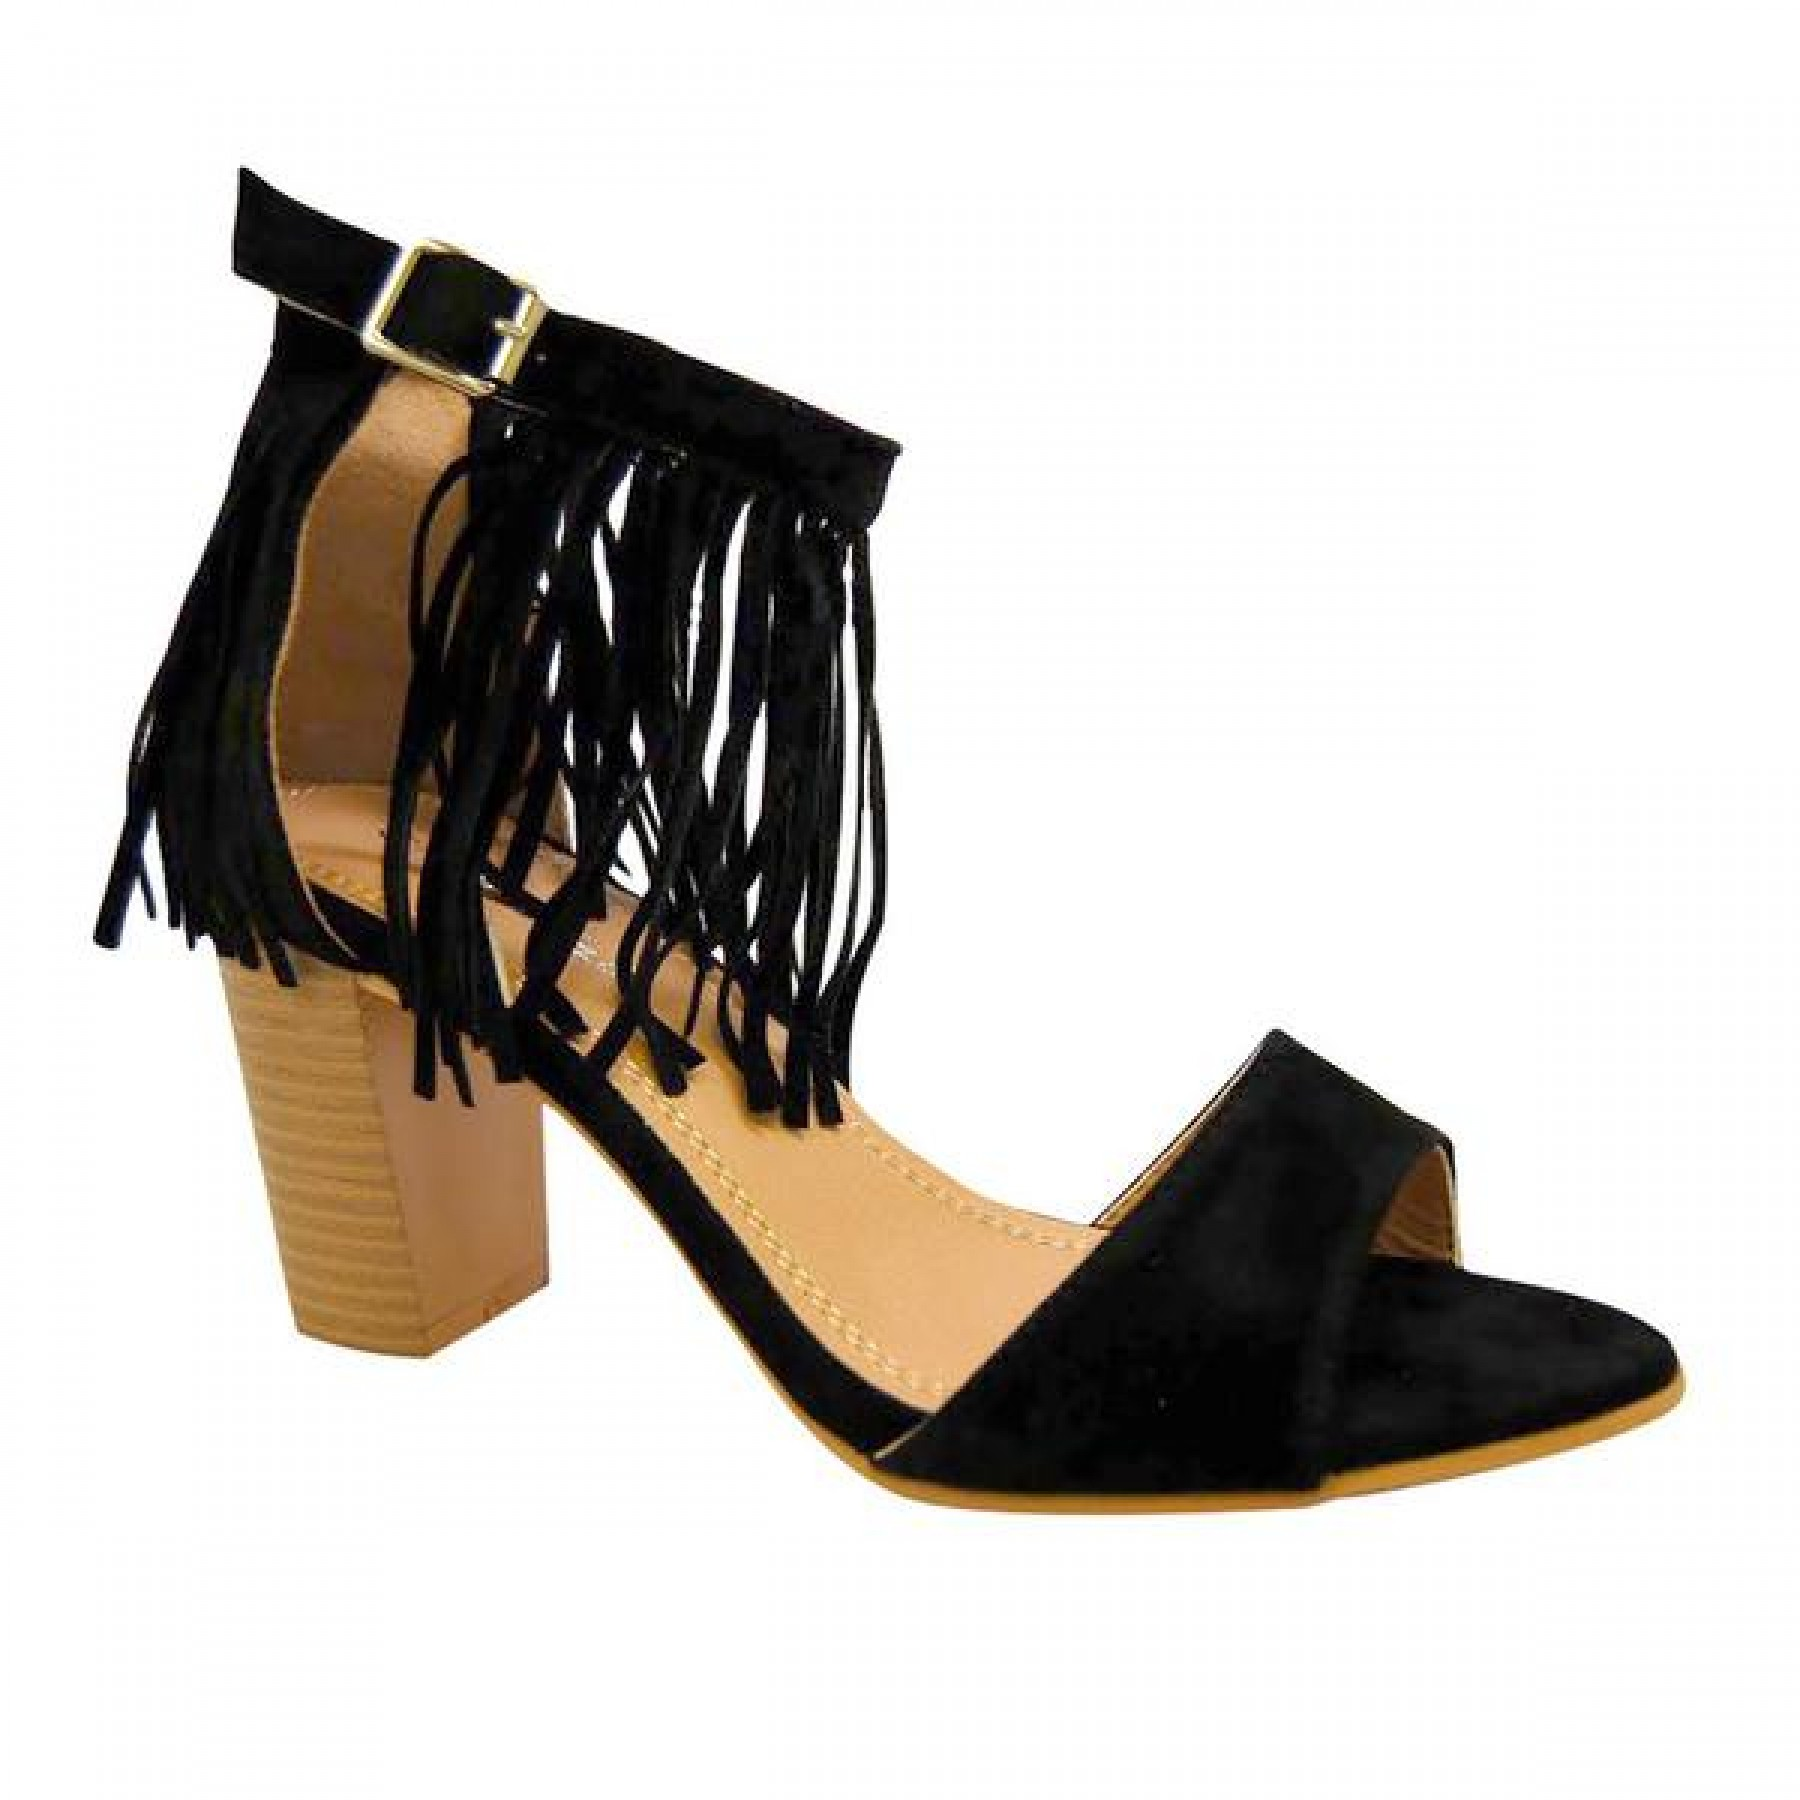 Women's Black Manmade Miranni Sueded Stacked Heel Sandal with Fringed Ankle